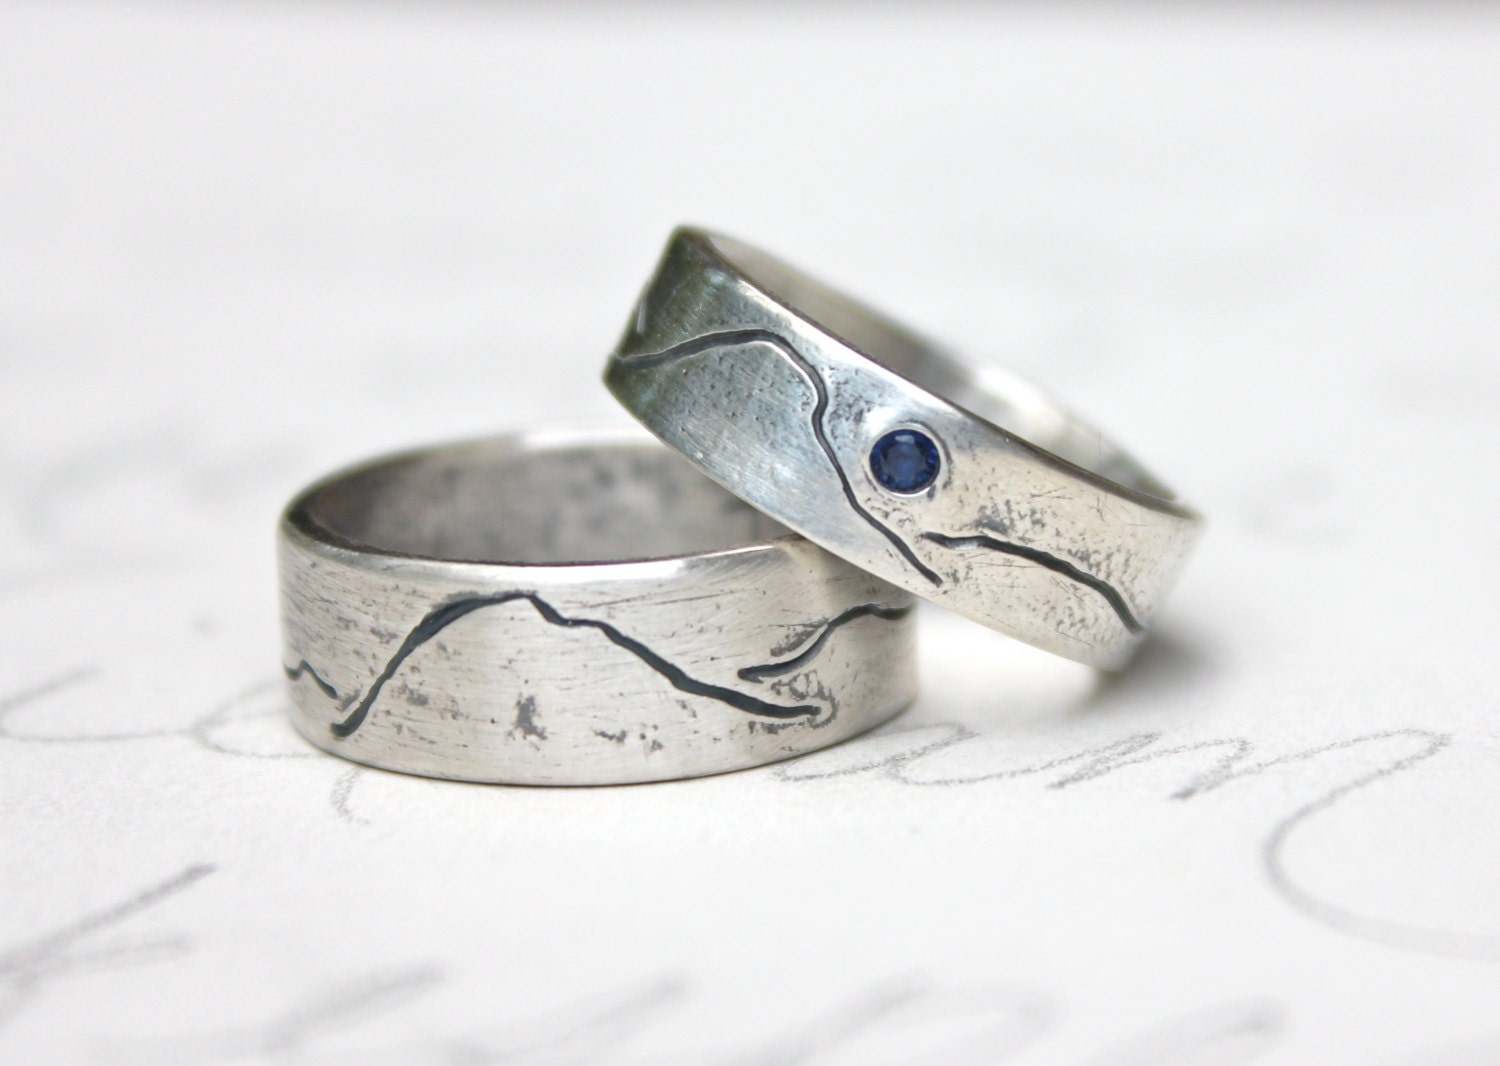 silver inspired rings wedding alternative crazyassjewelry silve a ocean wave made band custom ring engagement by buy rustic